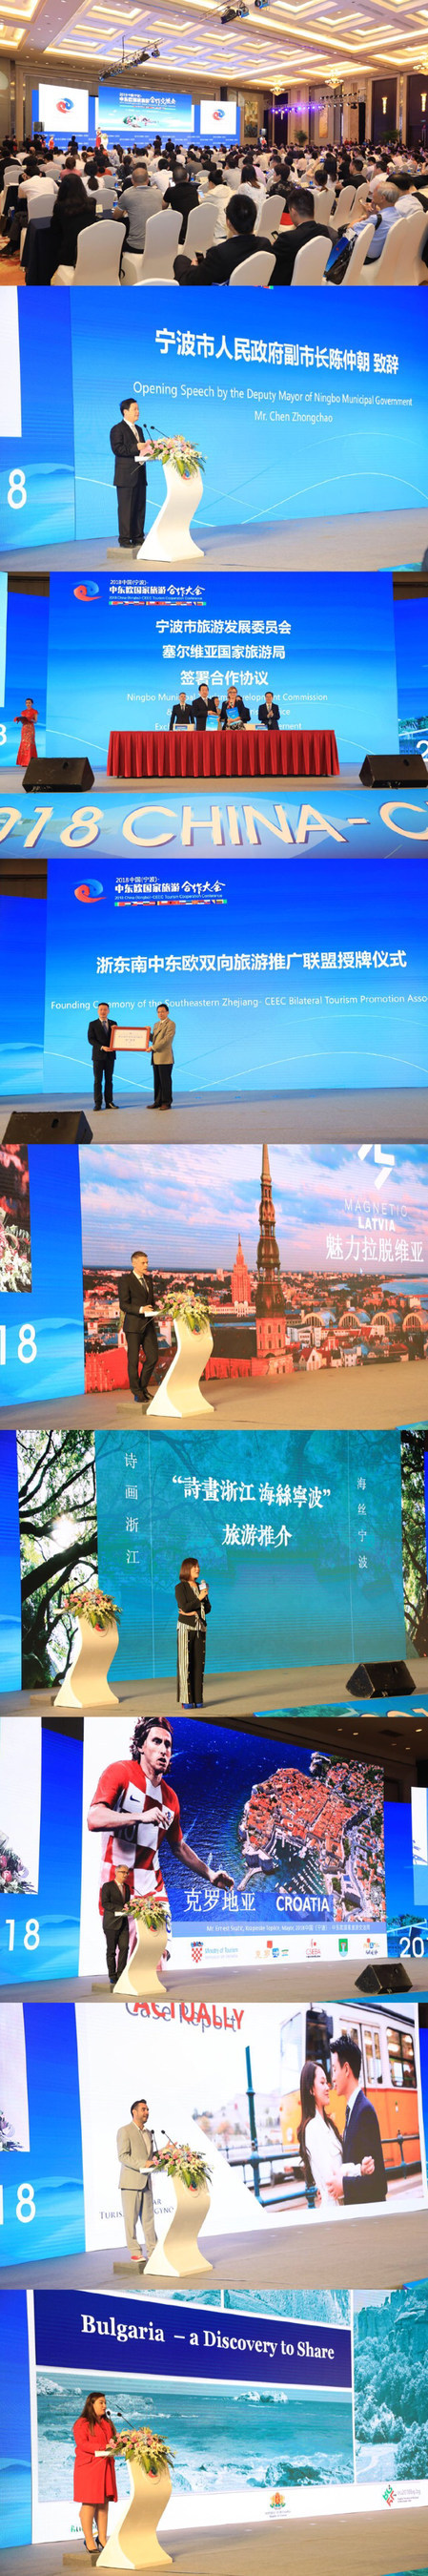 2018 China (Ningbo) - CEEC Tourism Cooperation Conference highlights